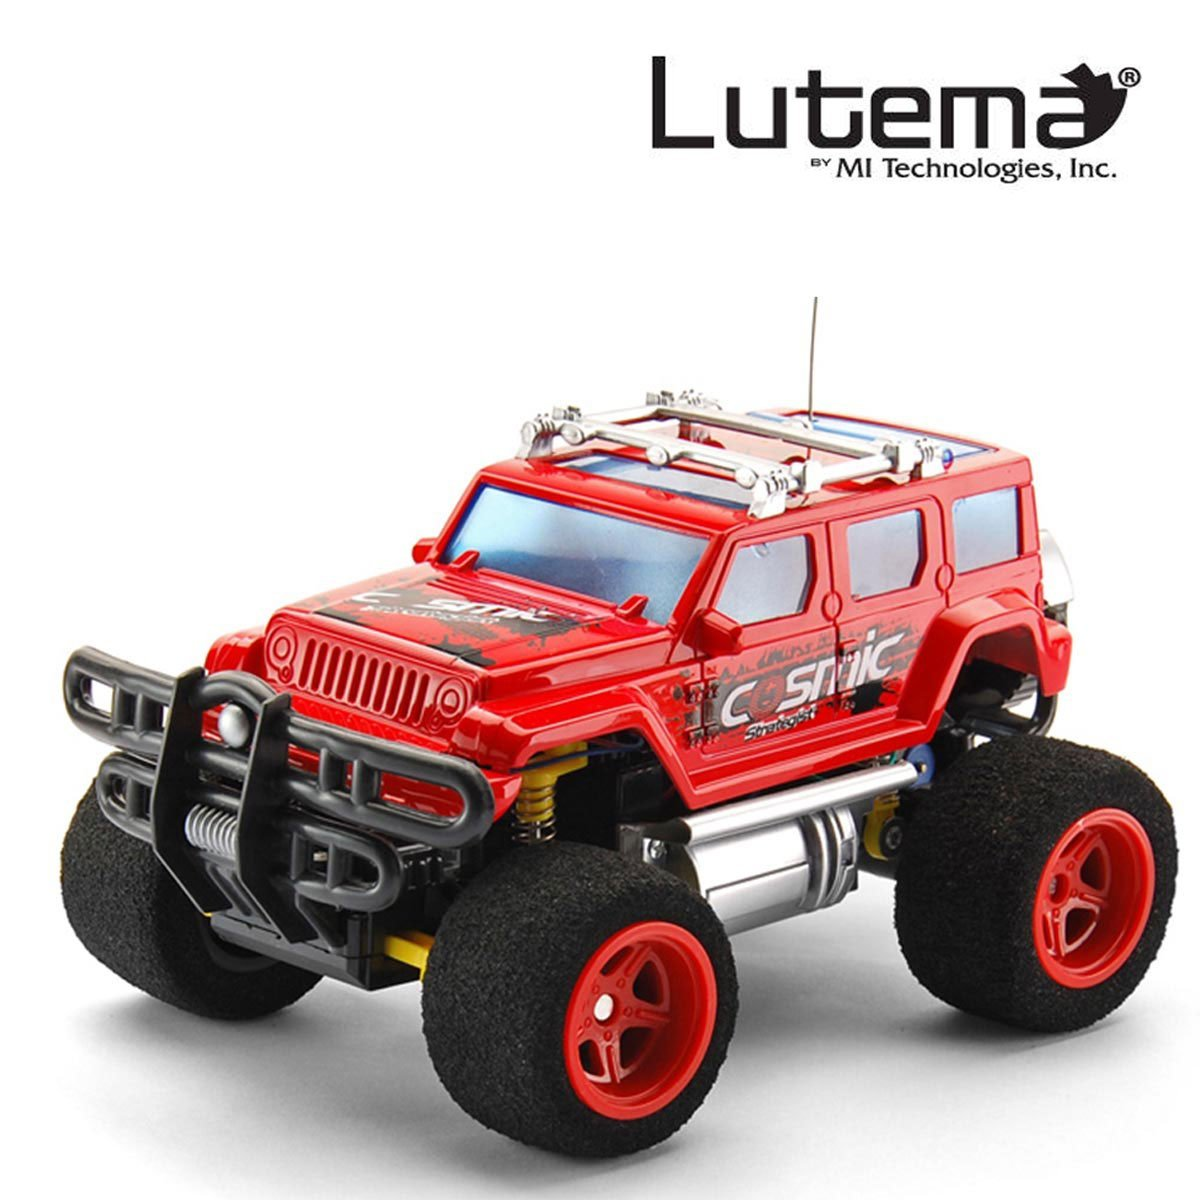 Lutema Cosmic Rocket 4CH Remote Control Truck, Red